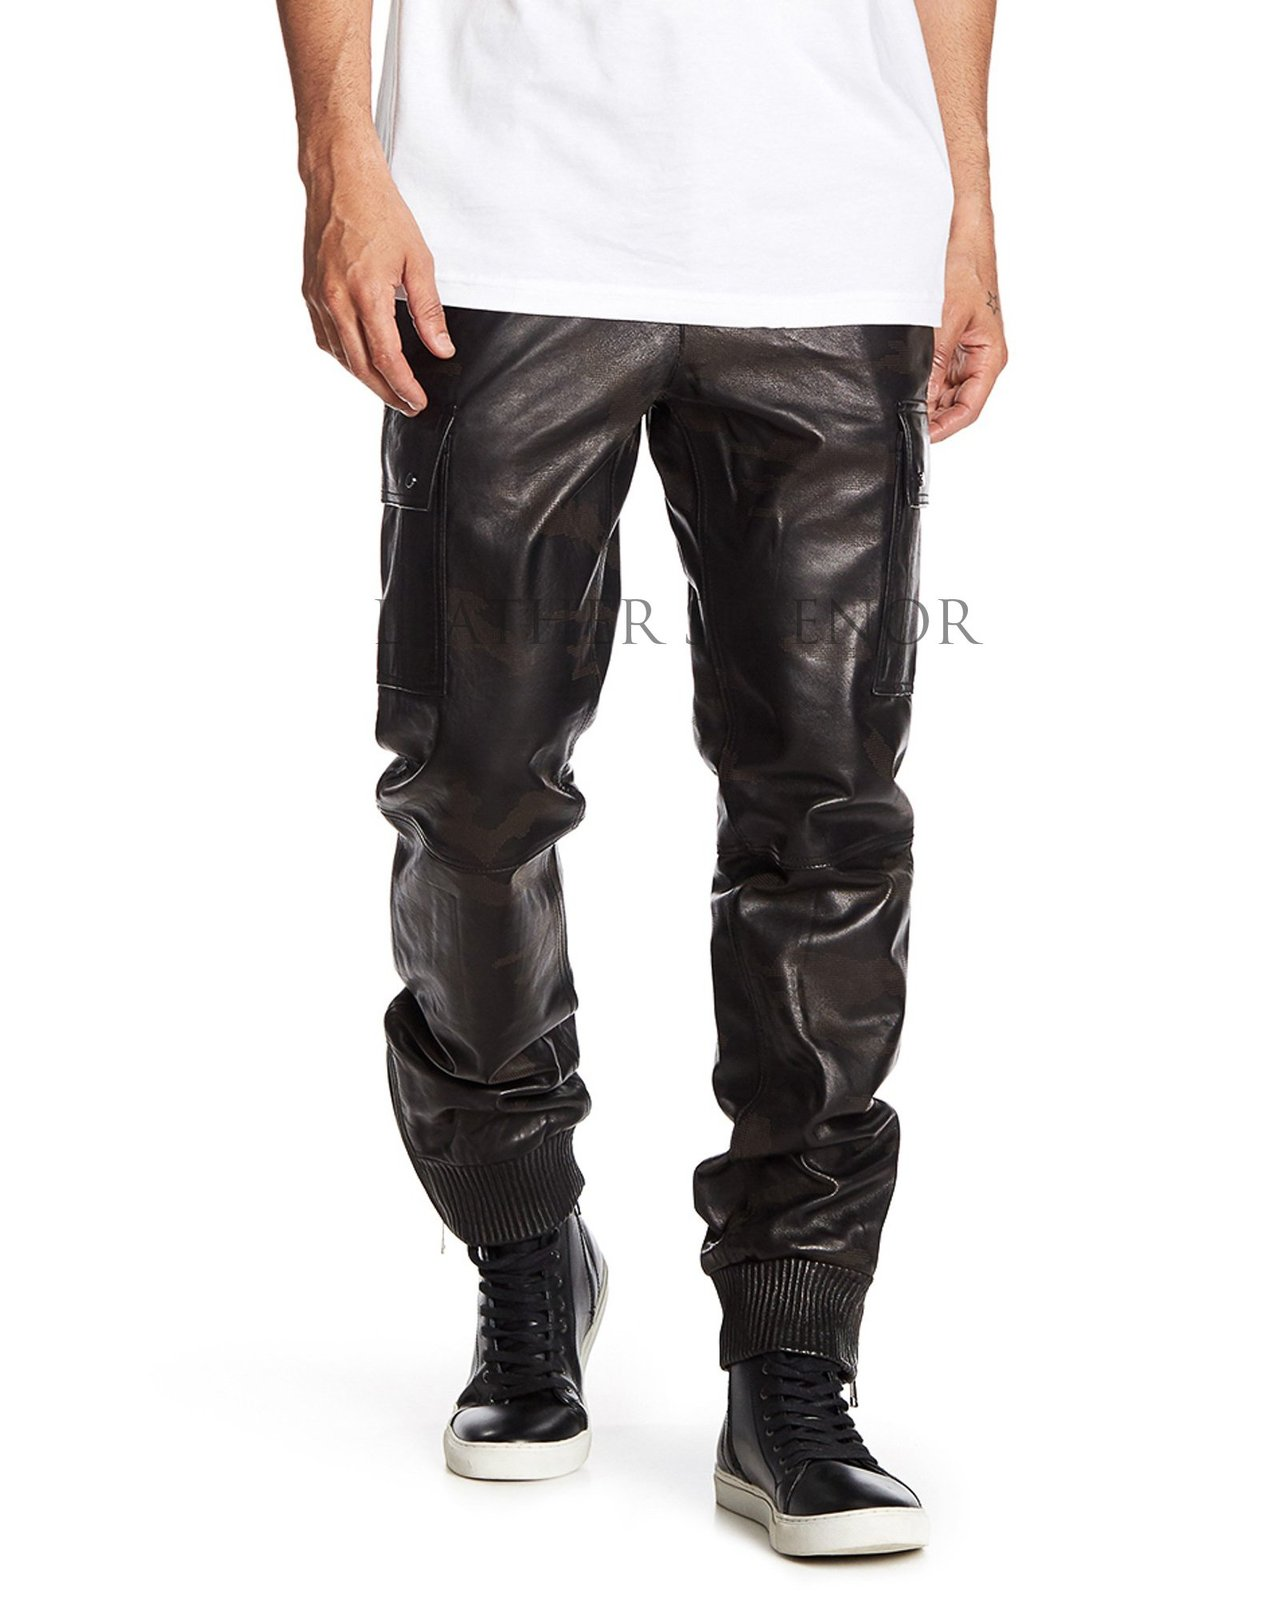 ELASTIC CUFFS STYLISH MEN LEATHER PANTS